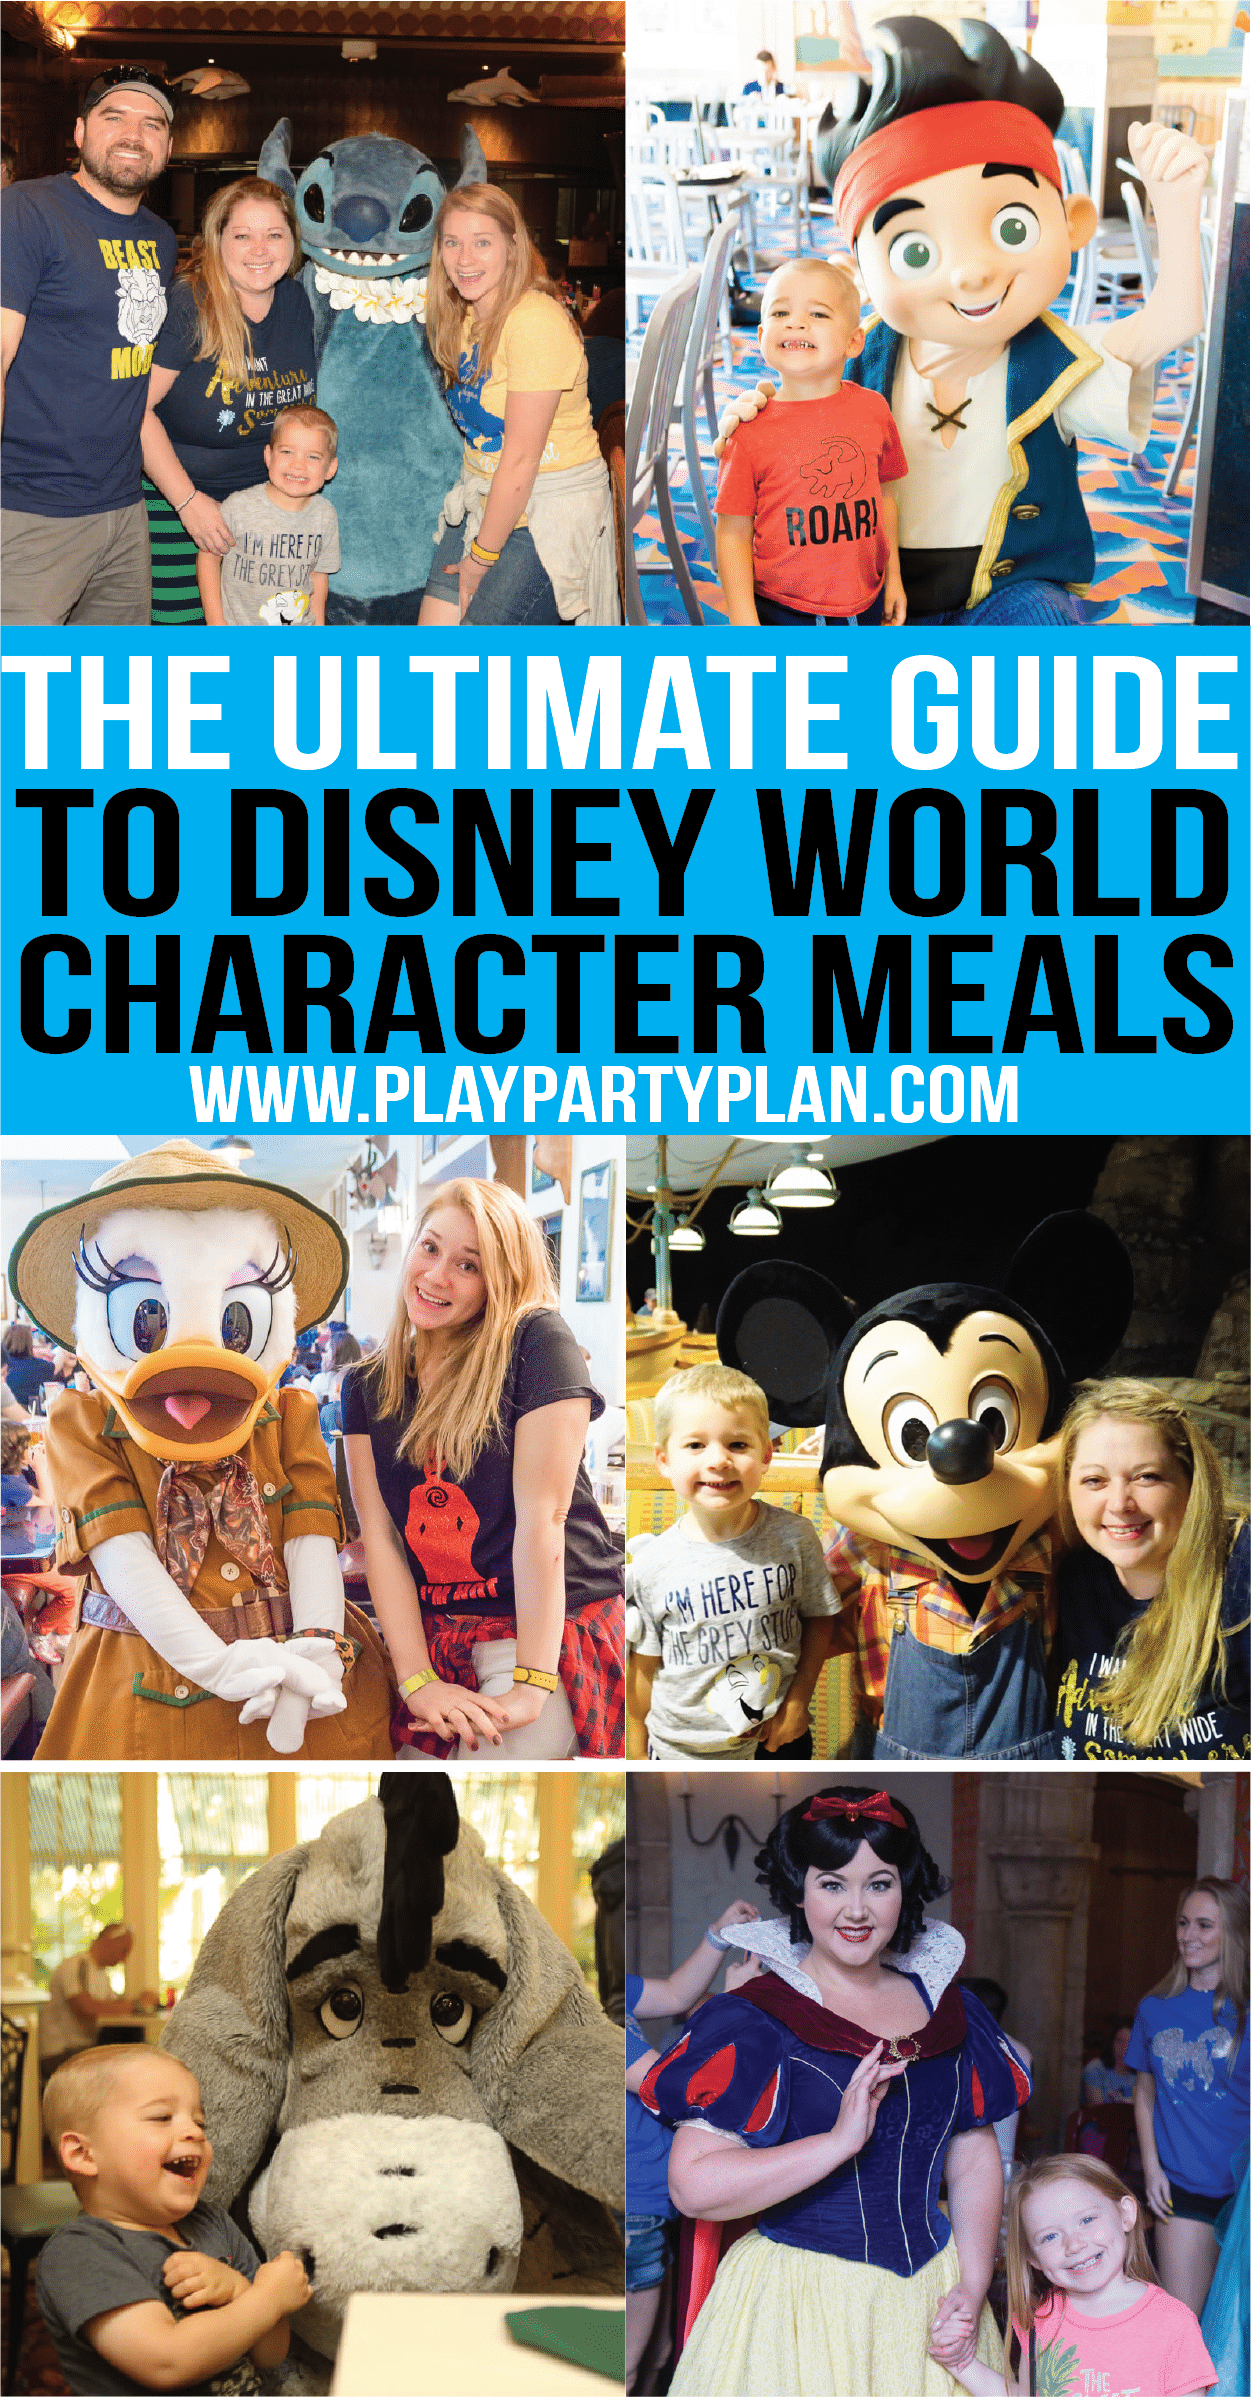 Everything you need to know about Disney character dining at Disney World! Tips for families with young kids, best meals for boys, which restaurants to do dinners or breakfast and more! Updated for 2018!